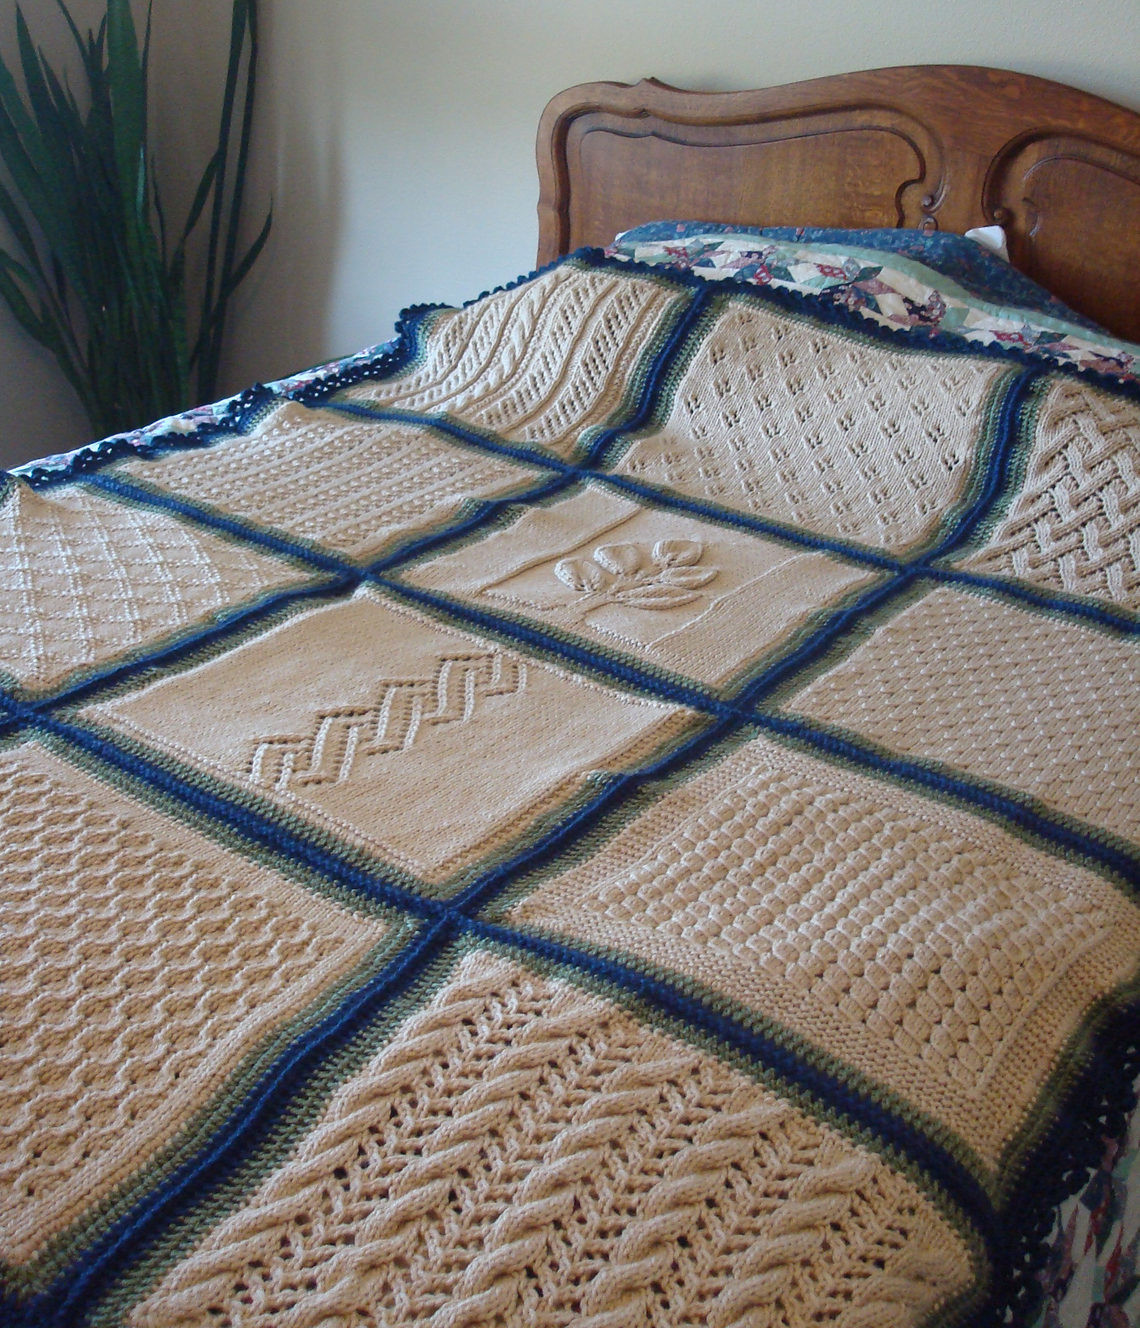 Beautiful Sampler Knitting Patterns for Afghans Accessories and Free Easy Knit Afghan Patterns Of Top 40 Ideas Free Easy Knit Afghan Patterns